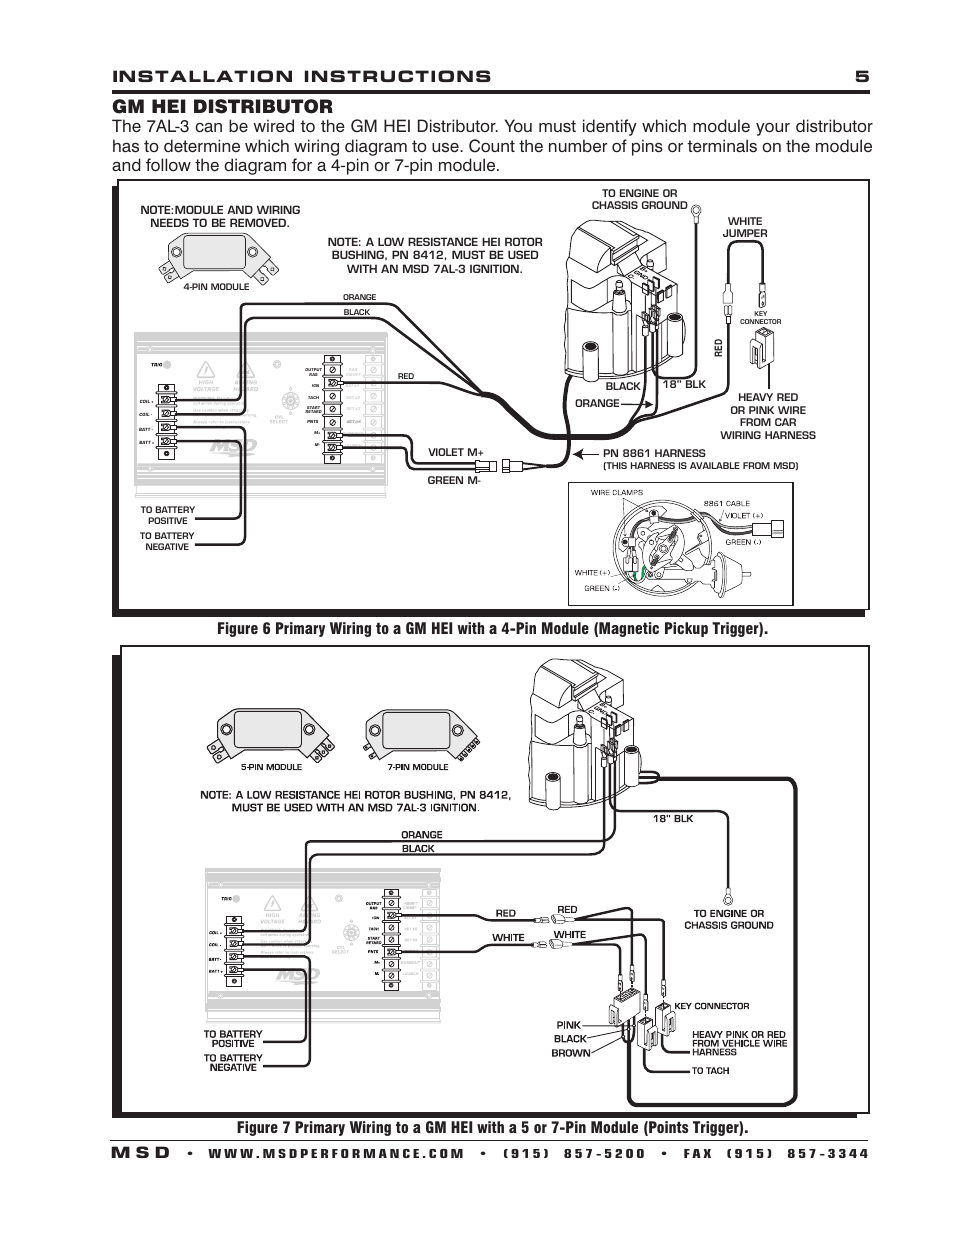 msd 7330 7al 3 ignition control installation page5?resize\\\=665%2C861 crane hi 4 wiring diagram revtech 100 diagram, badlands crane ignition wiring diagram at mr168.co